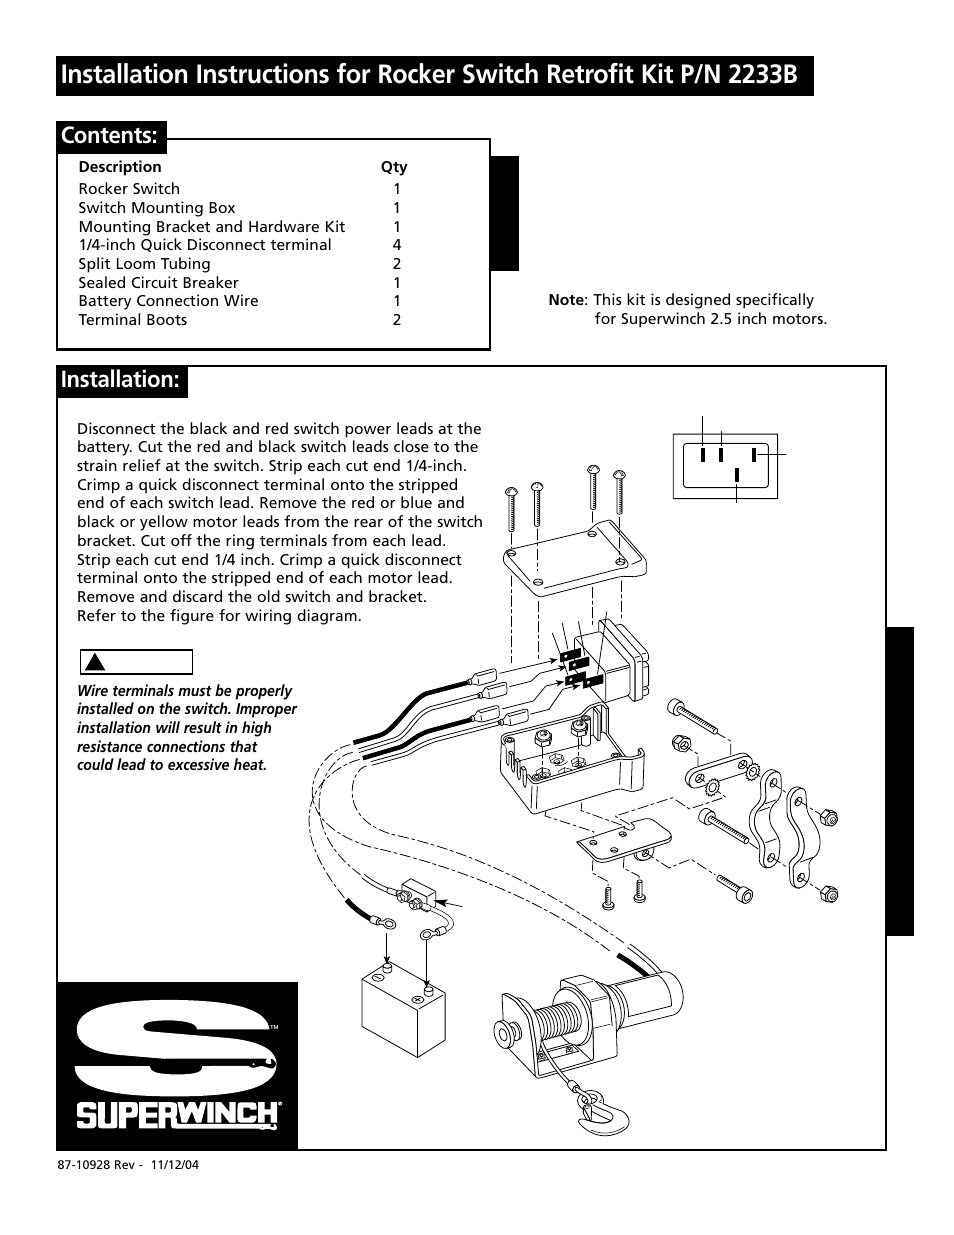 Superwinch Rocker Switch 2233b User Manual 6 Pages. Superwinch Circuit  Breaker Beautiful Valuable T1500 Rocker Switch Wiring Diagram